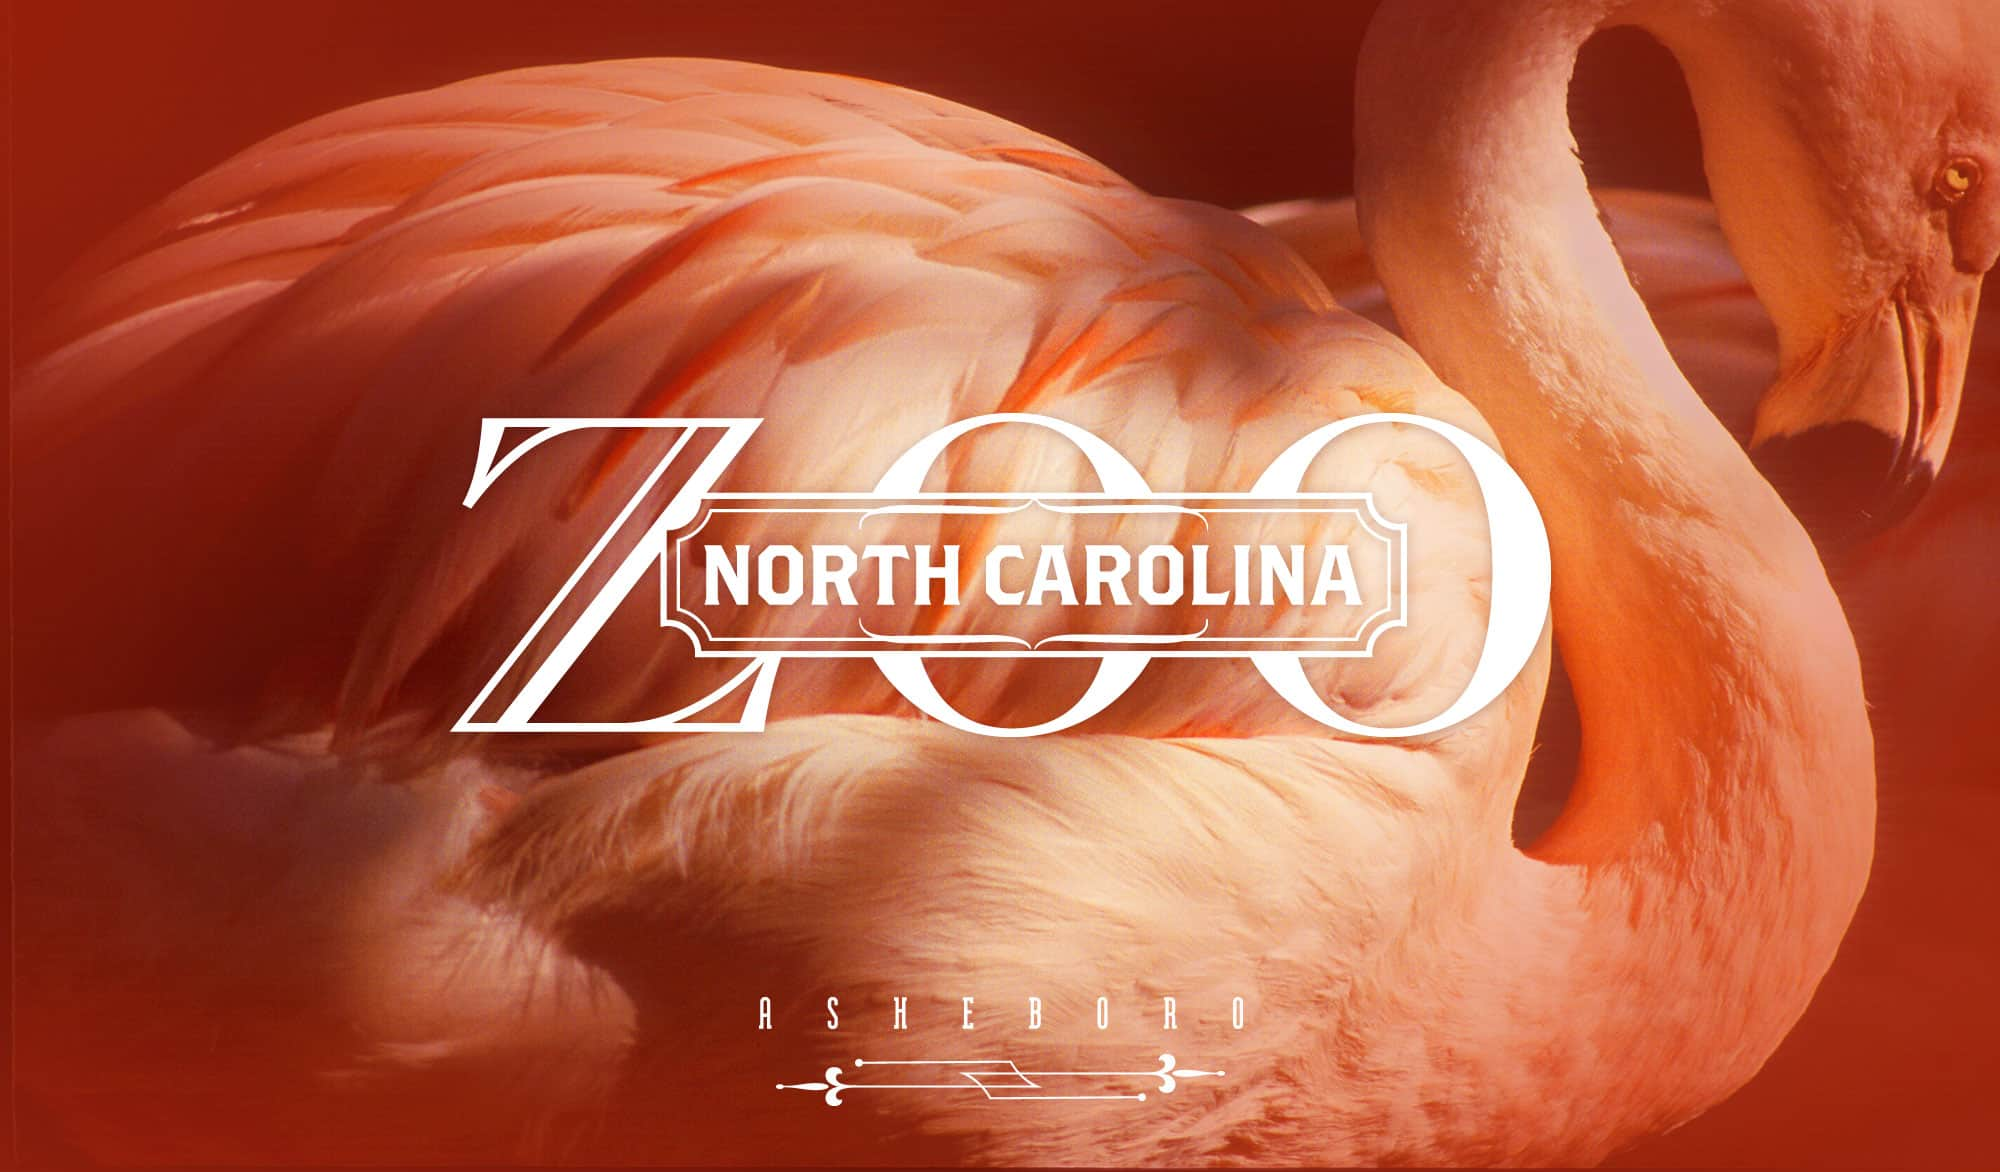 North Carolina Zoo